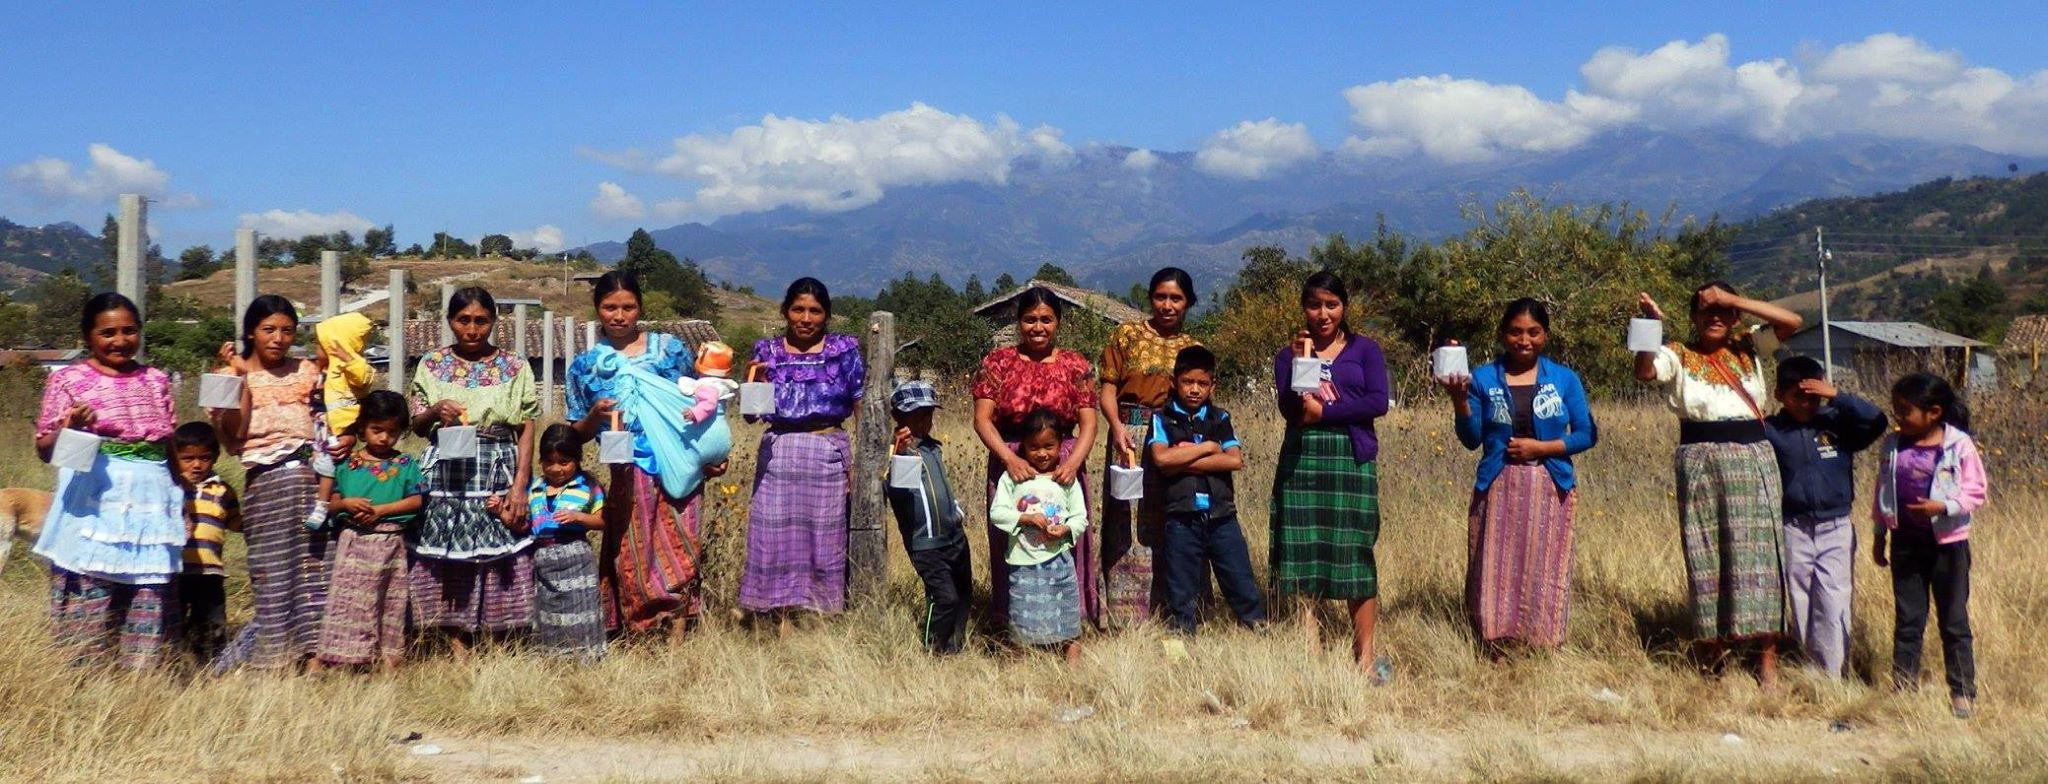 Notes from the Field: Distributing Lights to Mayan Women in Guatemala